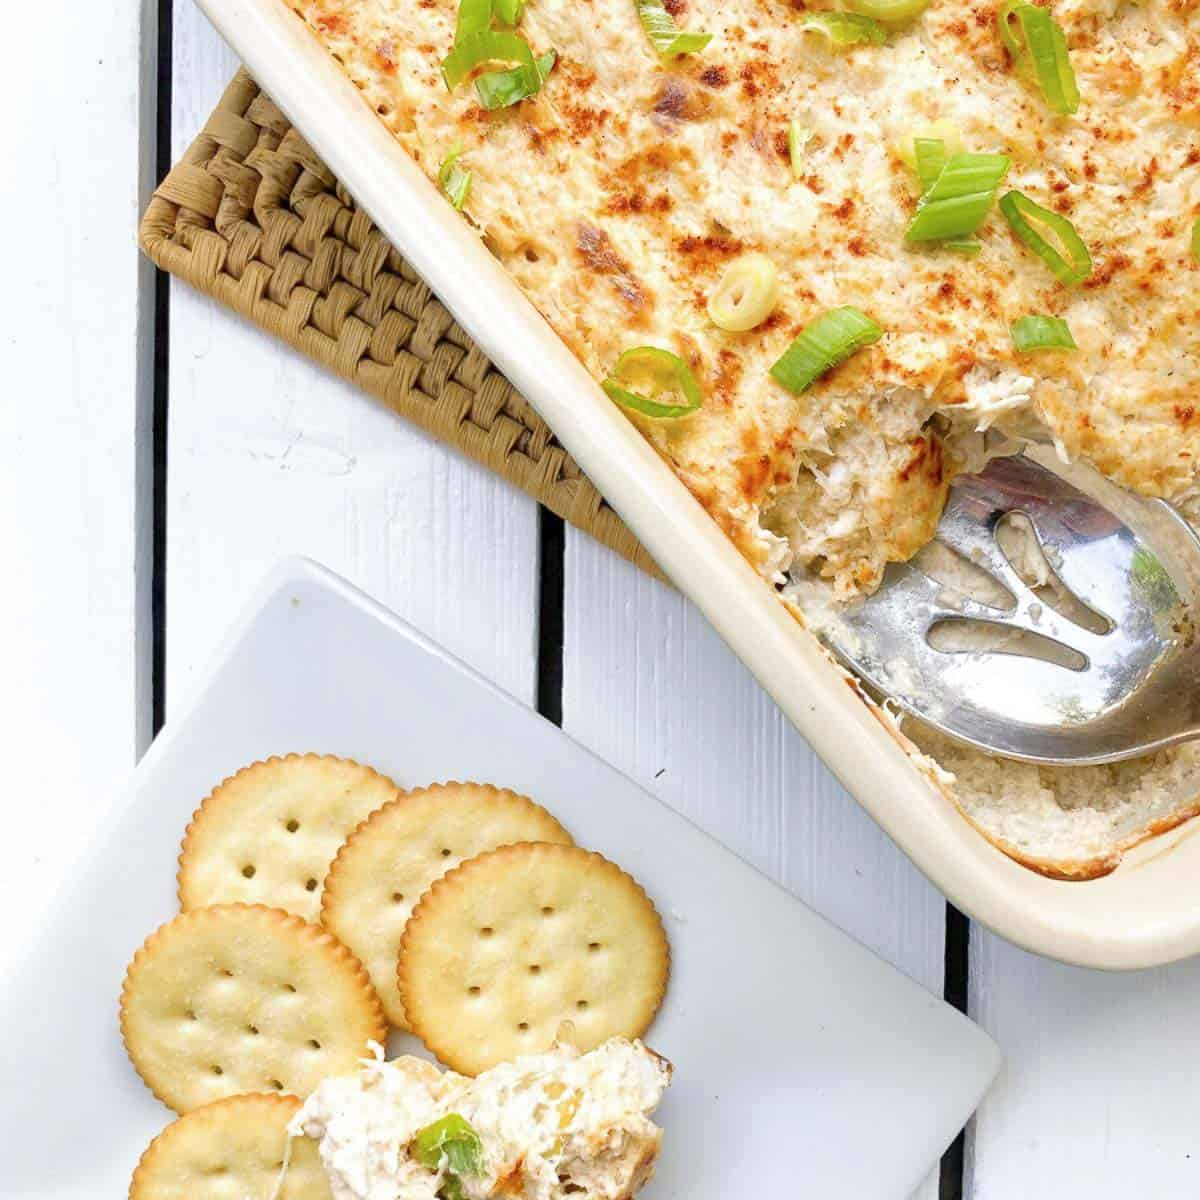 Hot crab artichoke dip baked in casserole dish scooped onto plate with crackers.